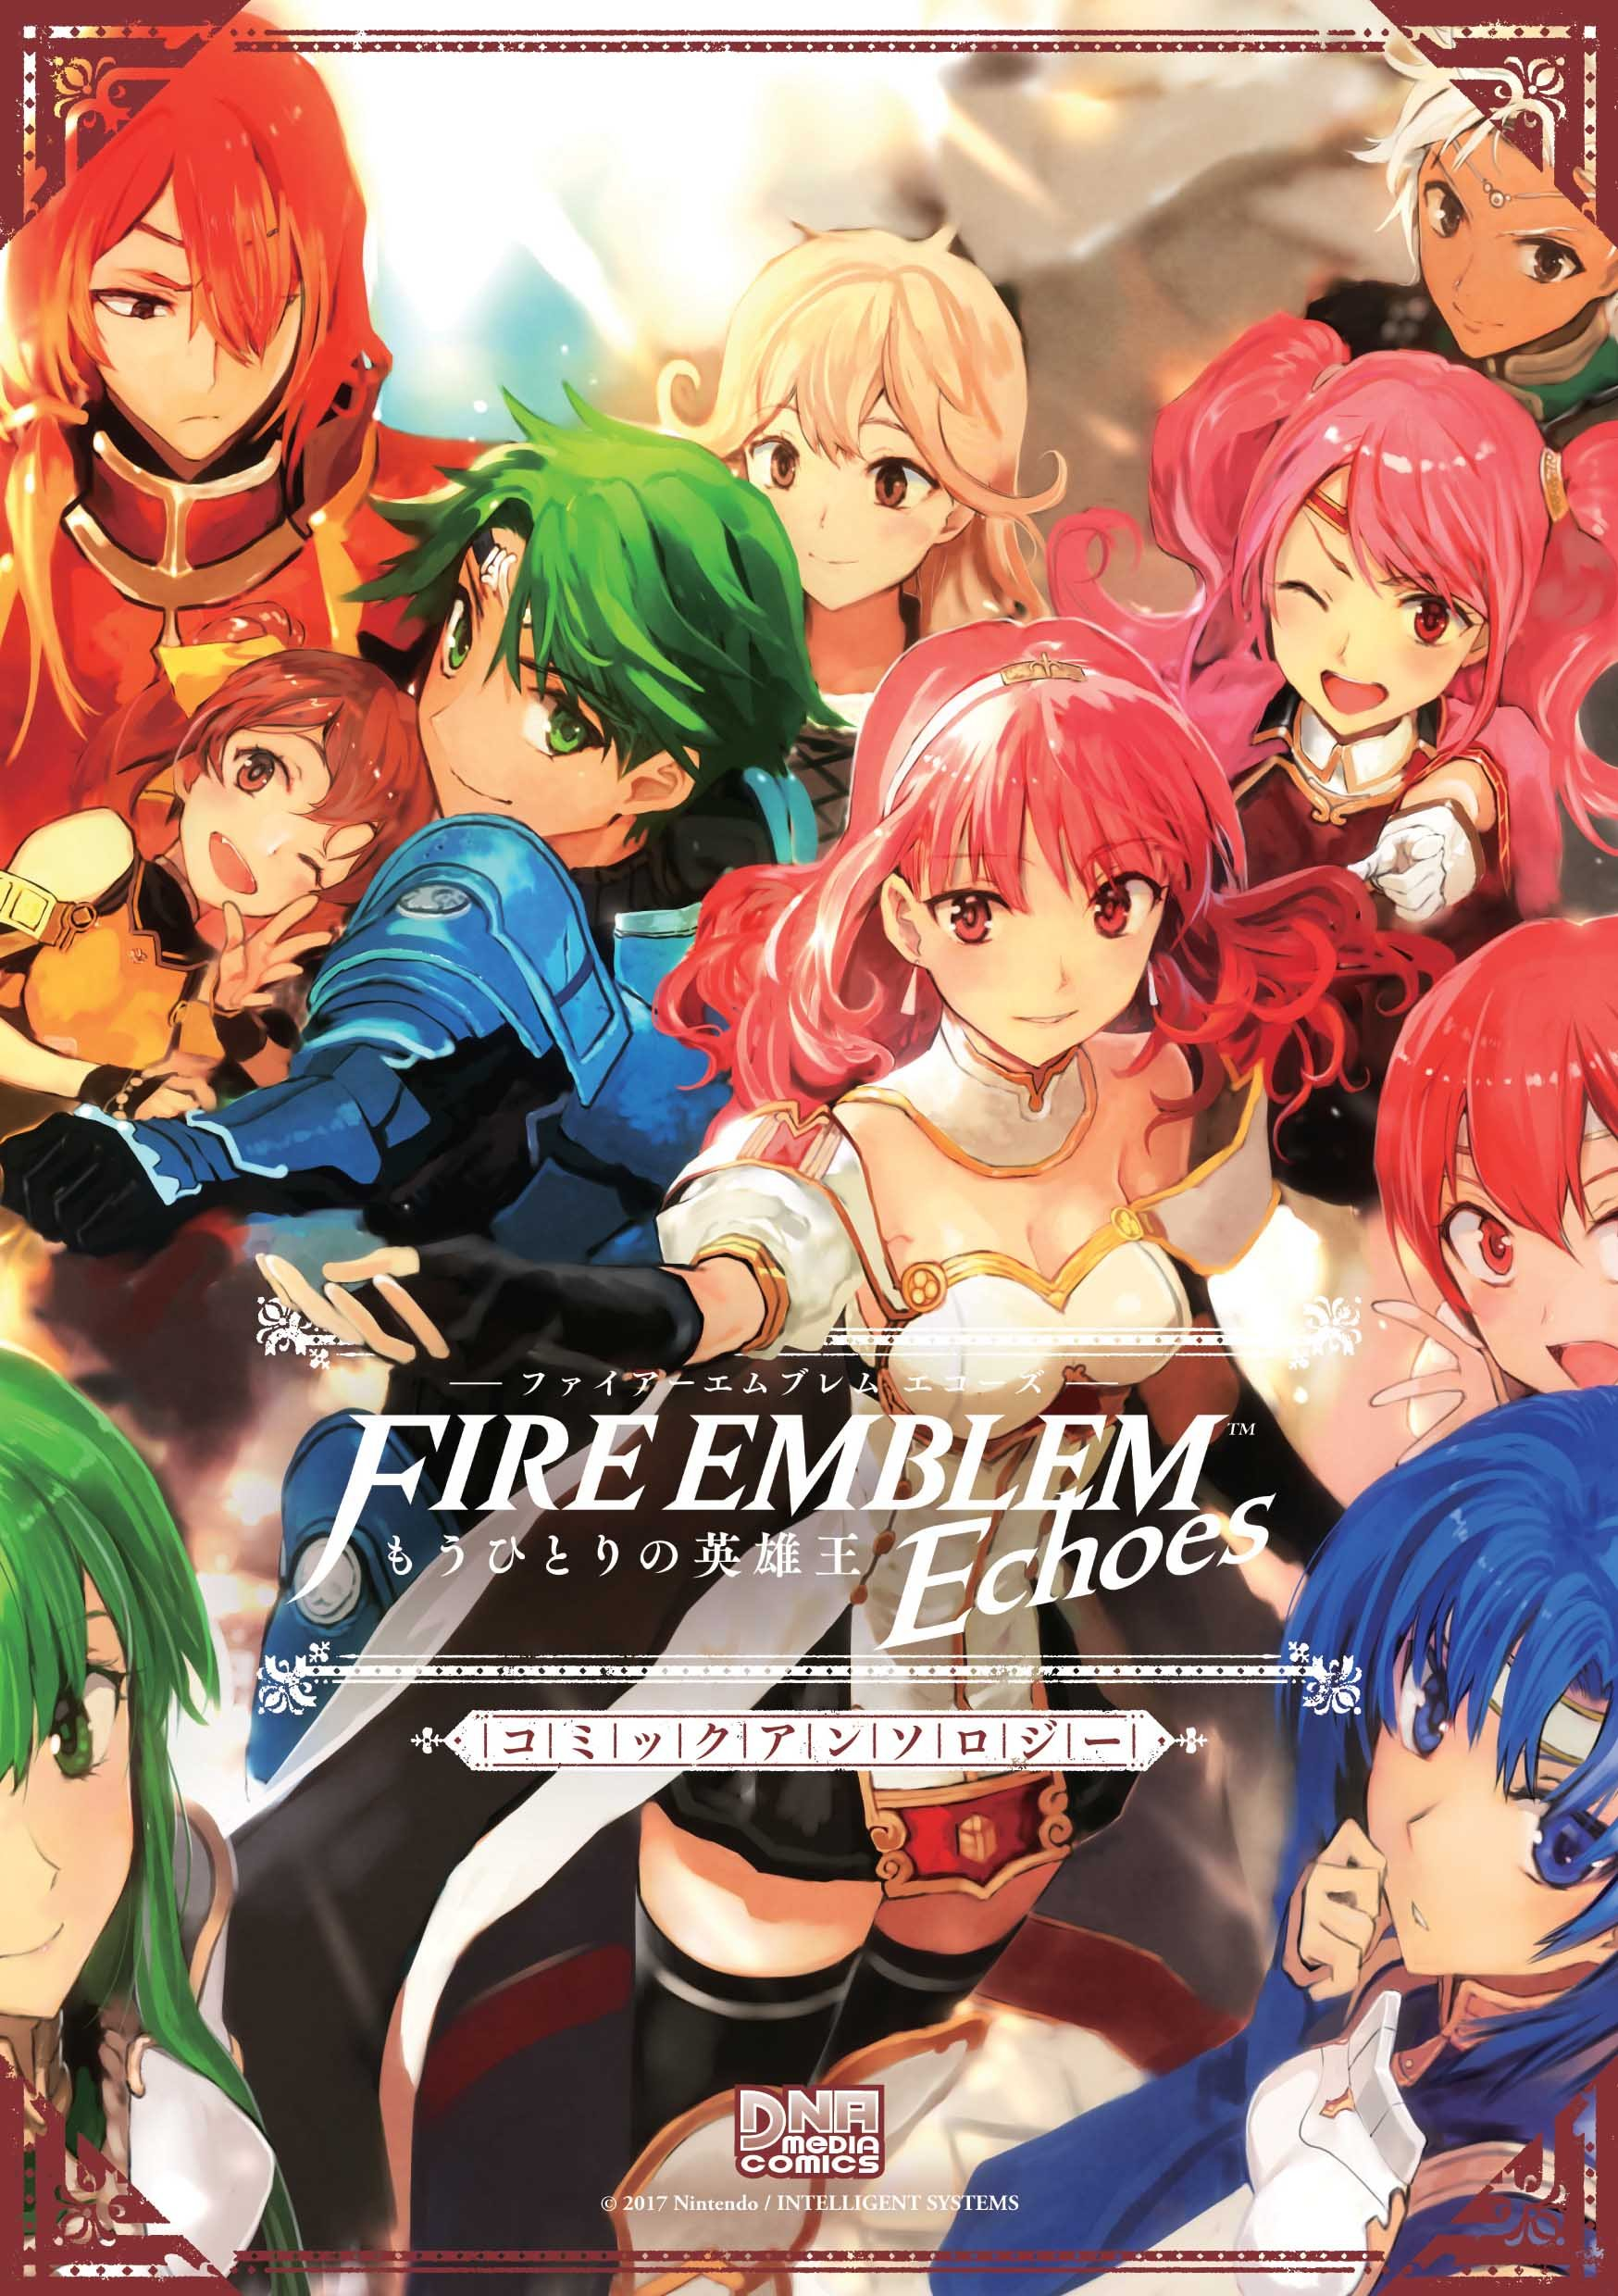 Fire Emblem Echoes: Shadows of Valentia Comic Anthology